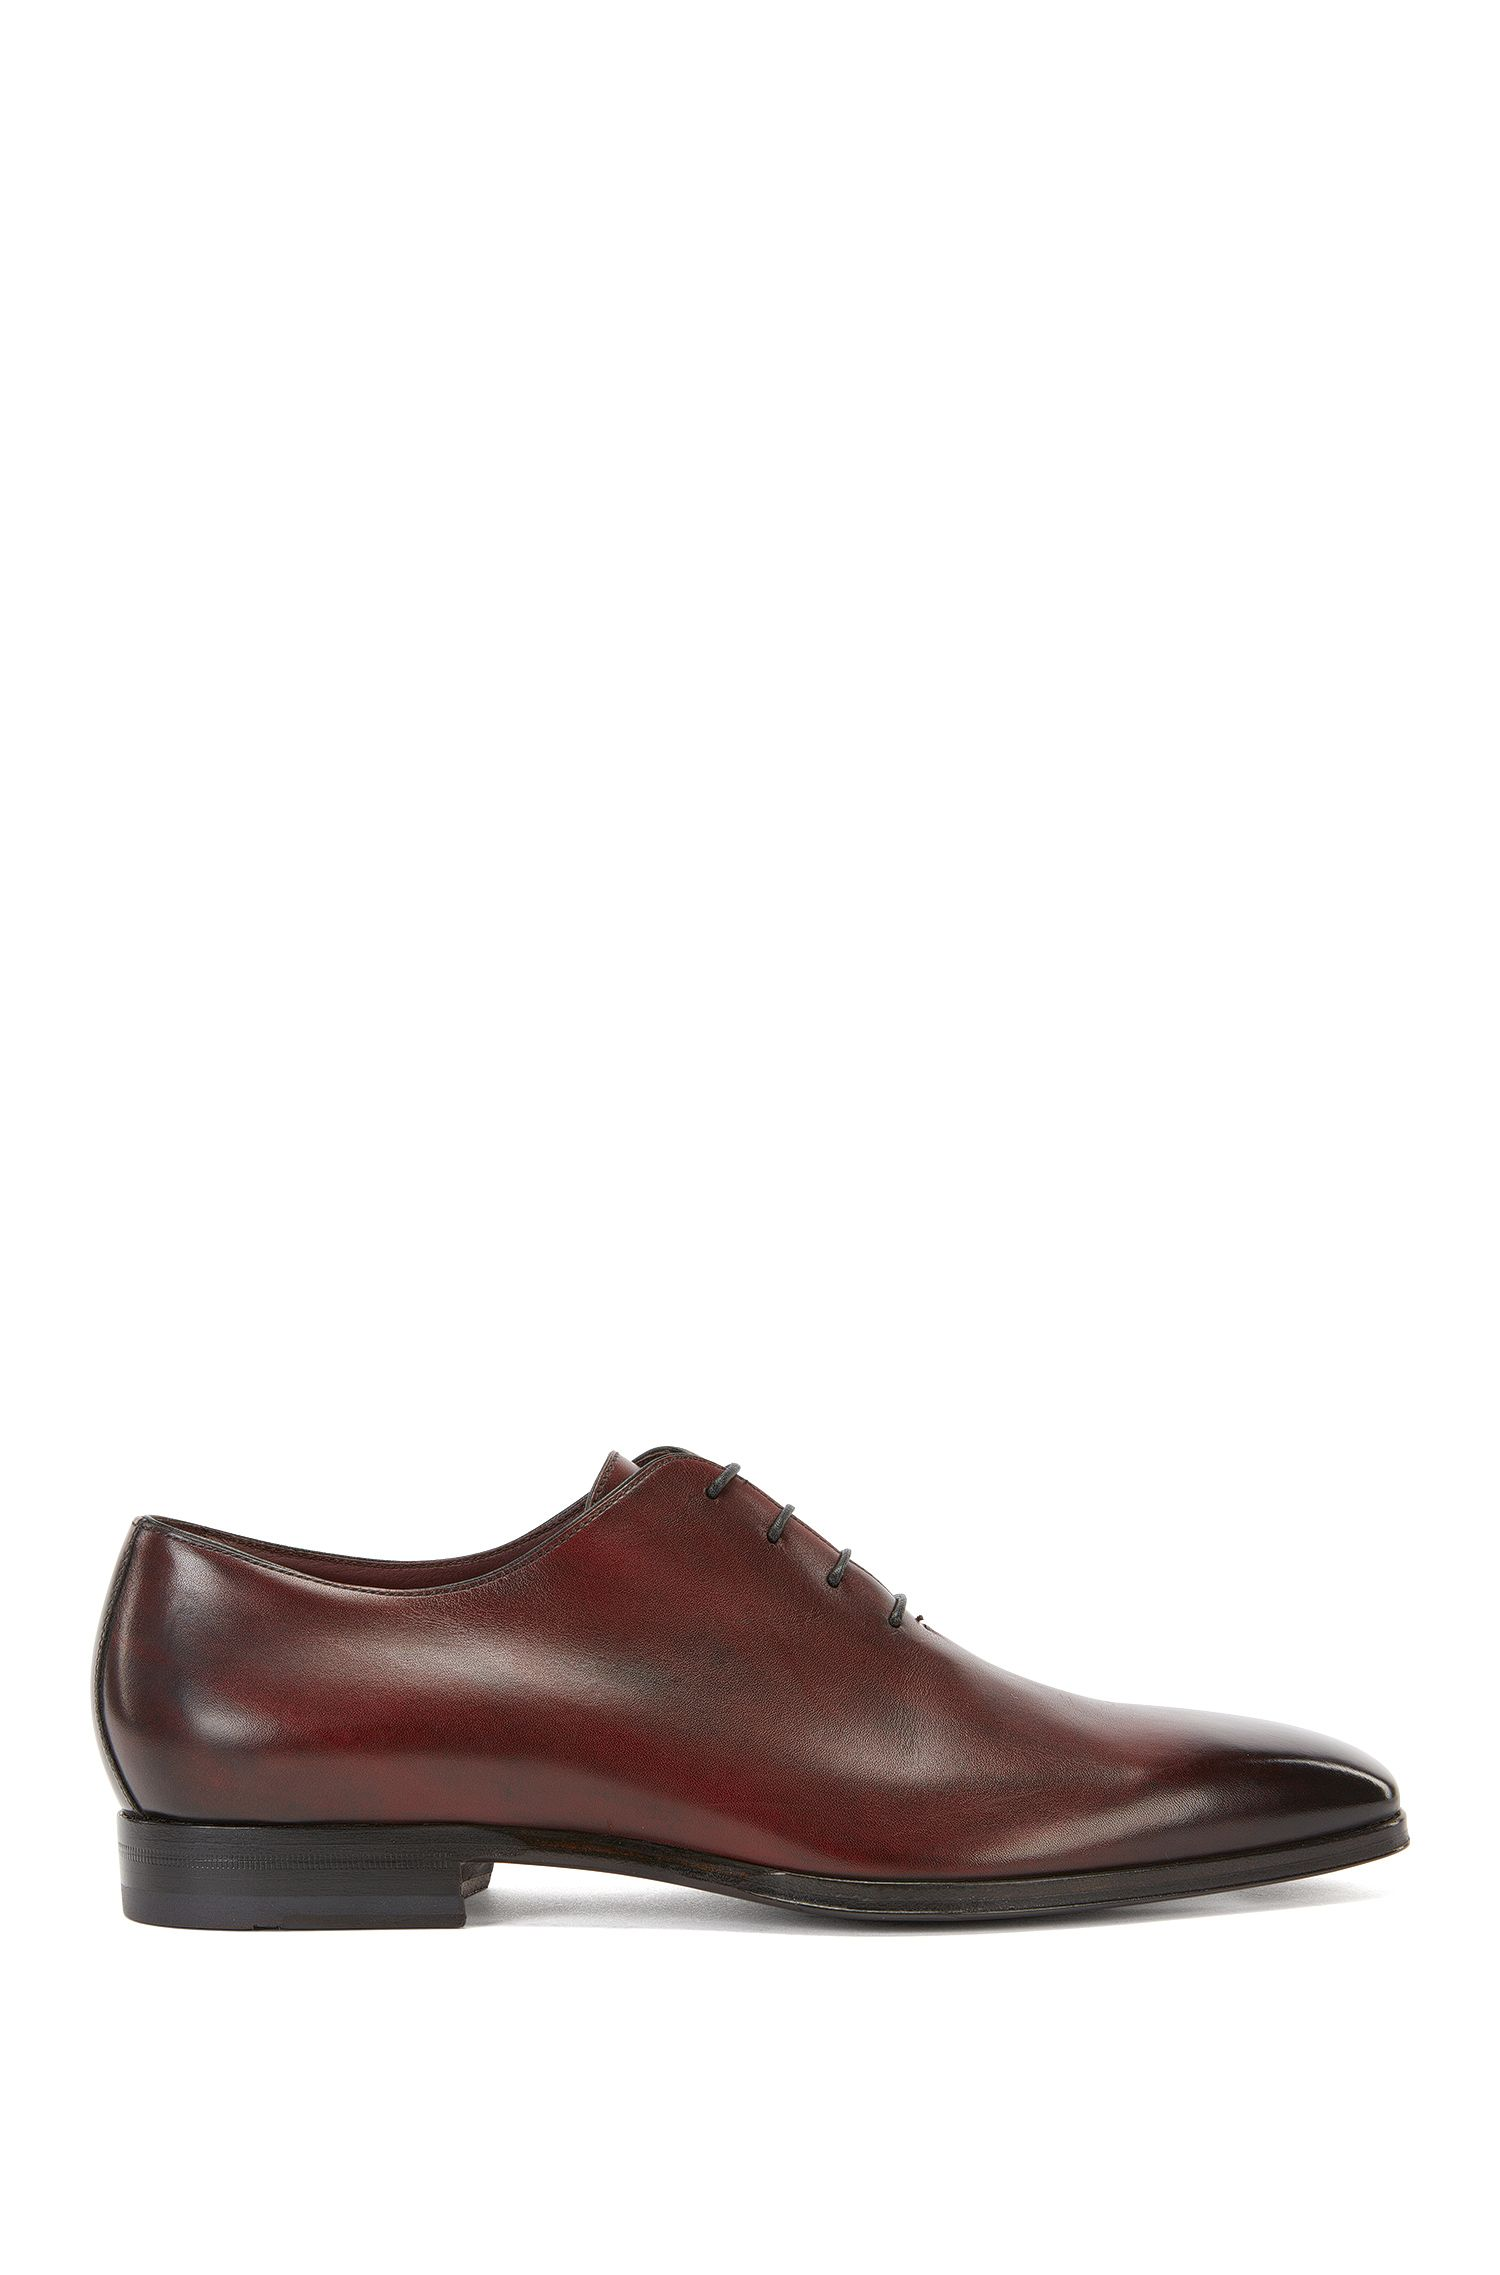 BOSS Tailored Oxford shoes in burnished leather